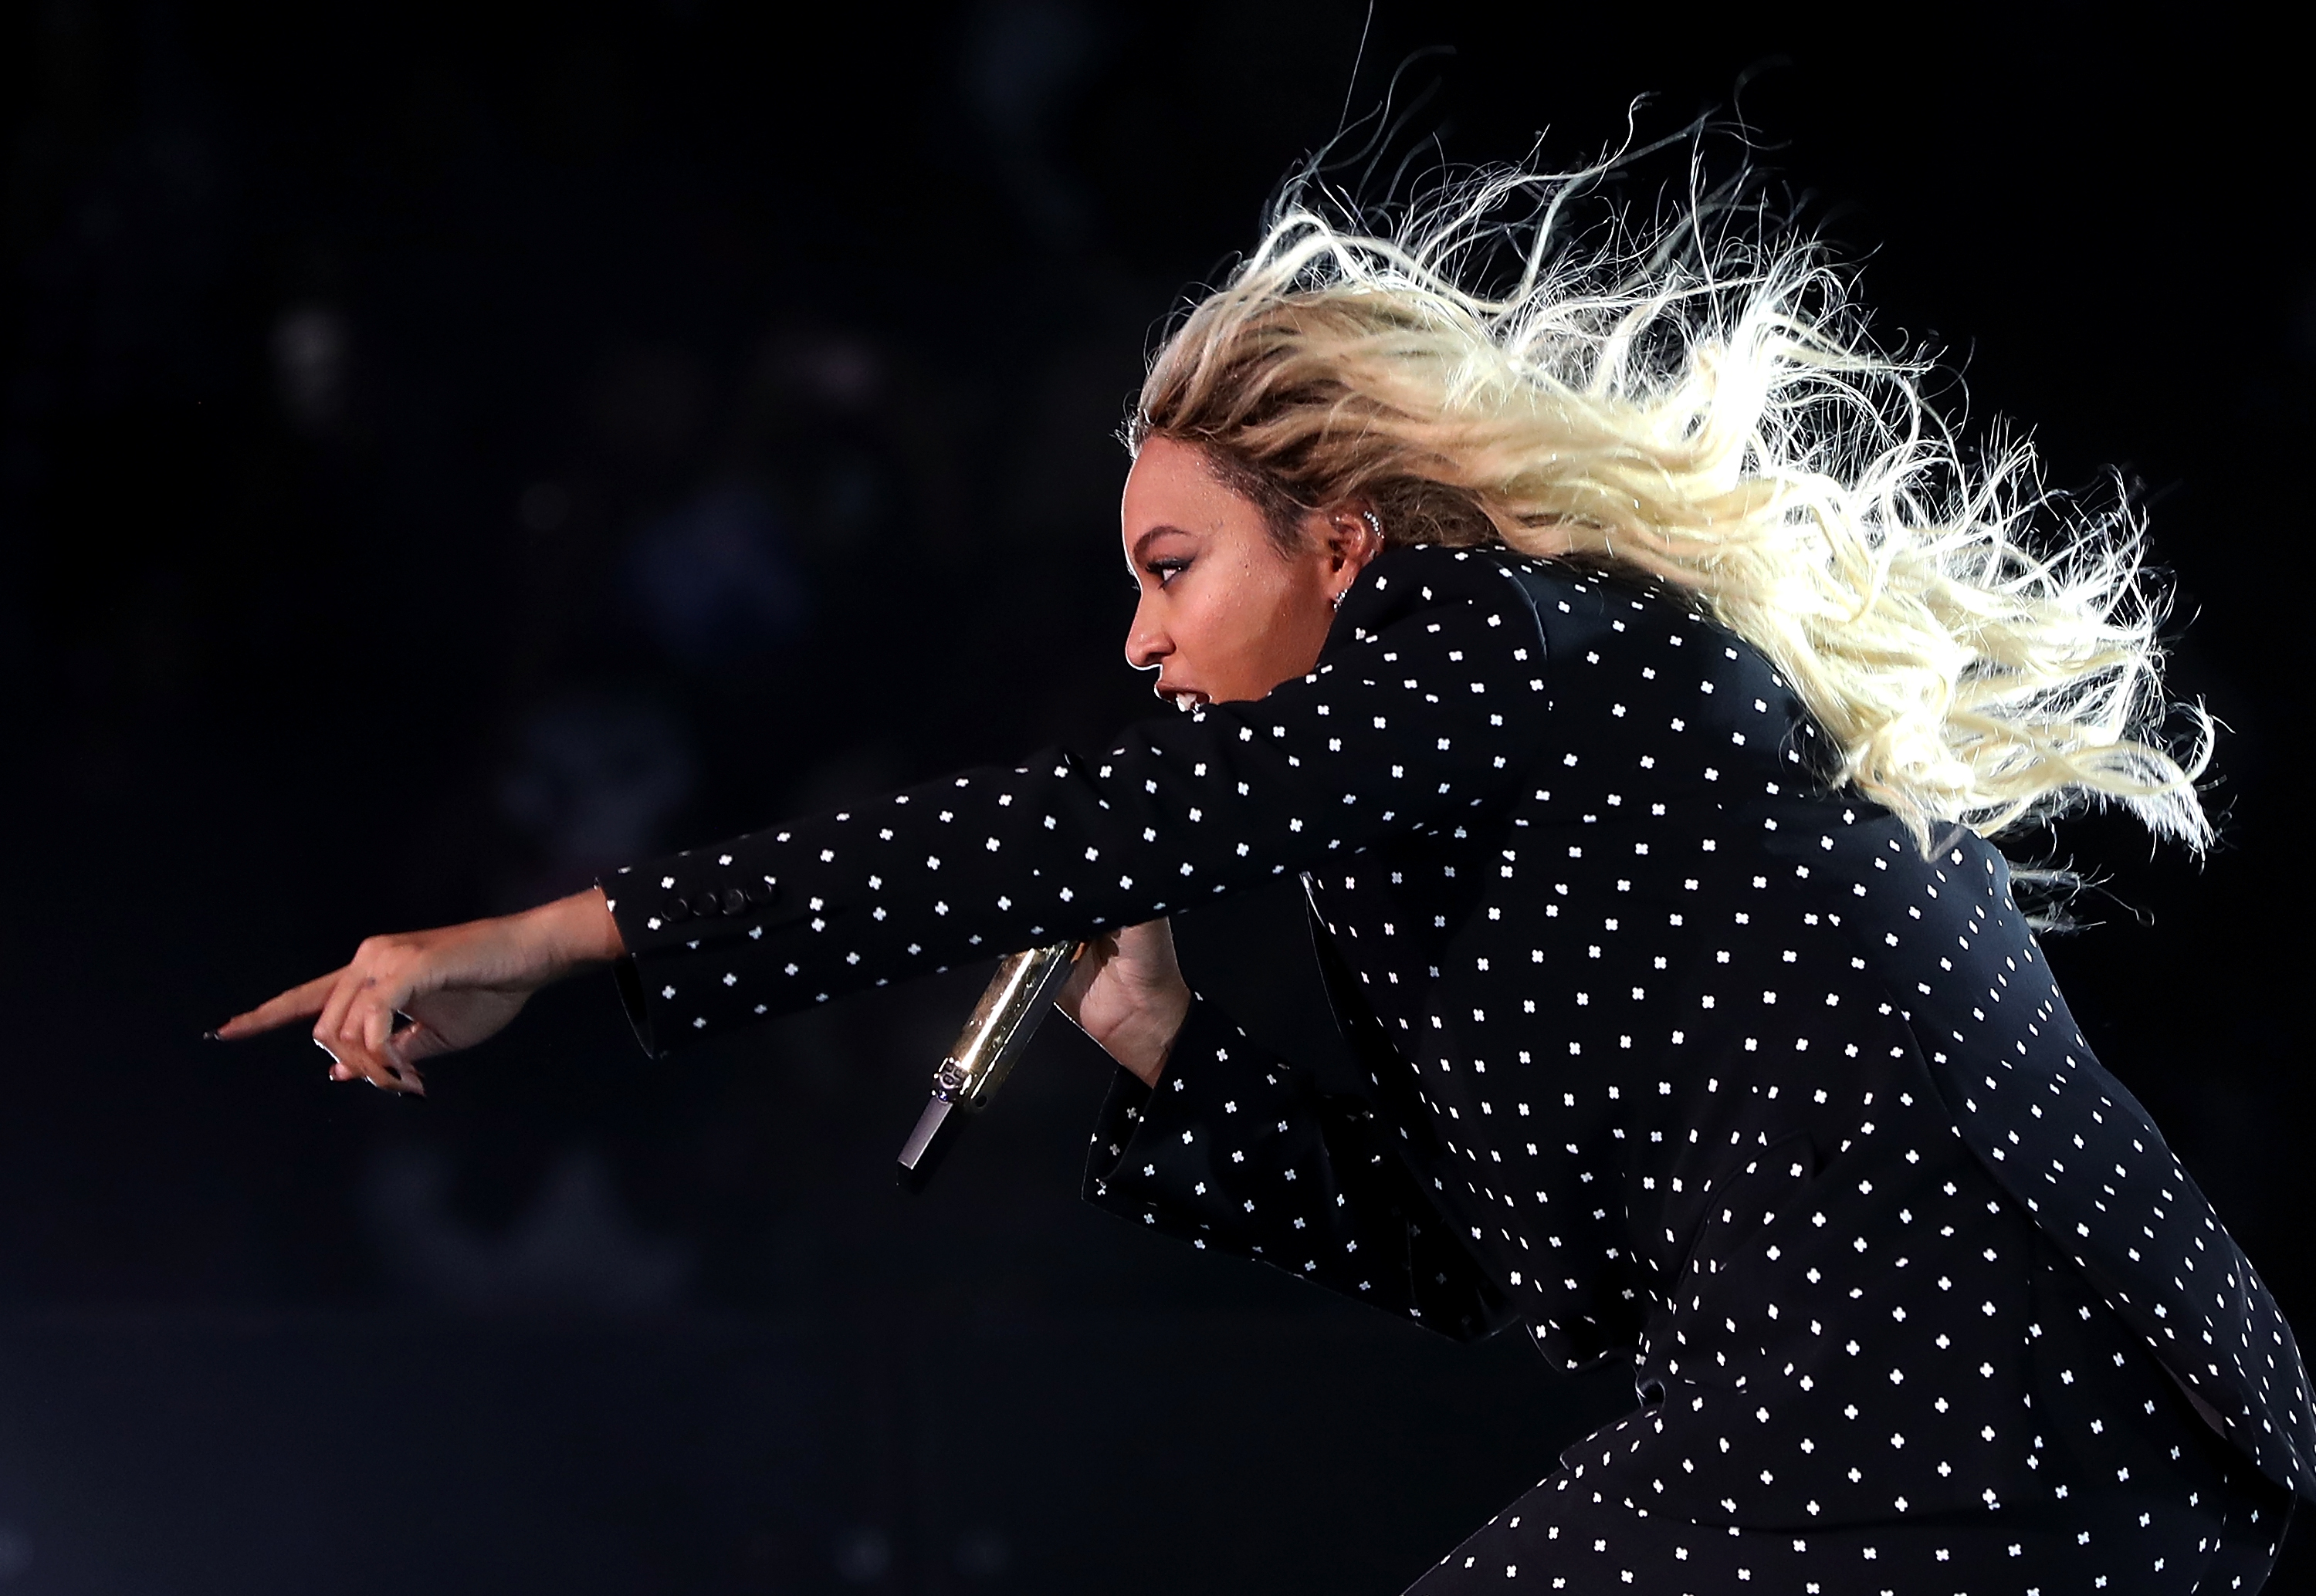 Beyoncé wore the best outfit to meet Hillary Clinton